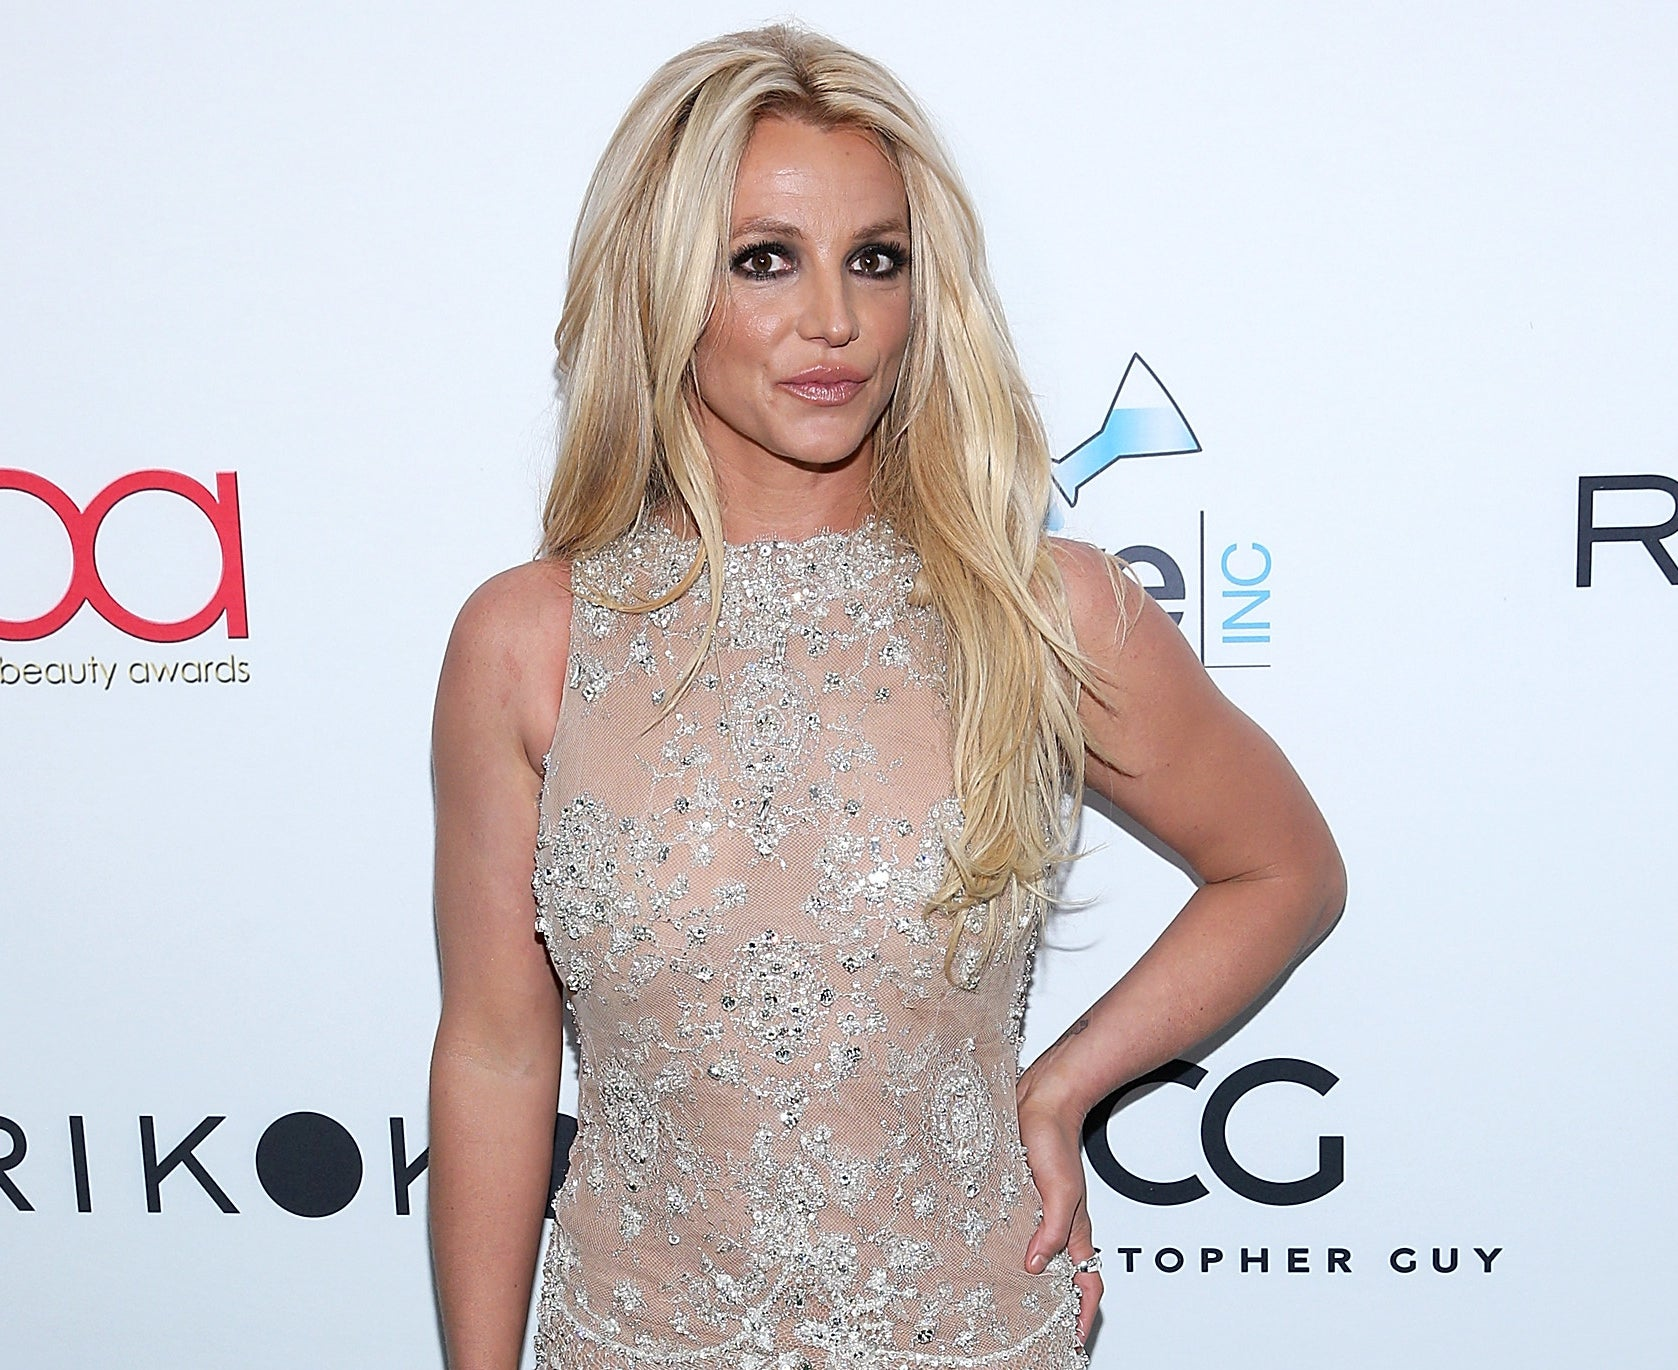 Britney smiles while posing in a beige crystal dress